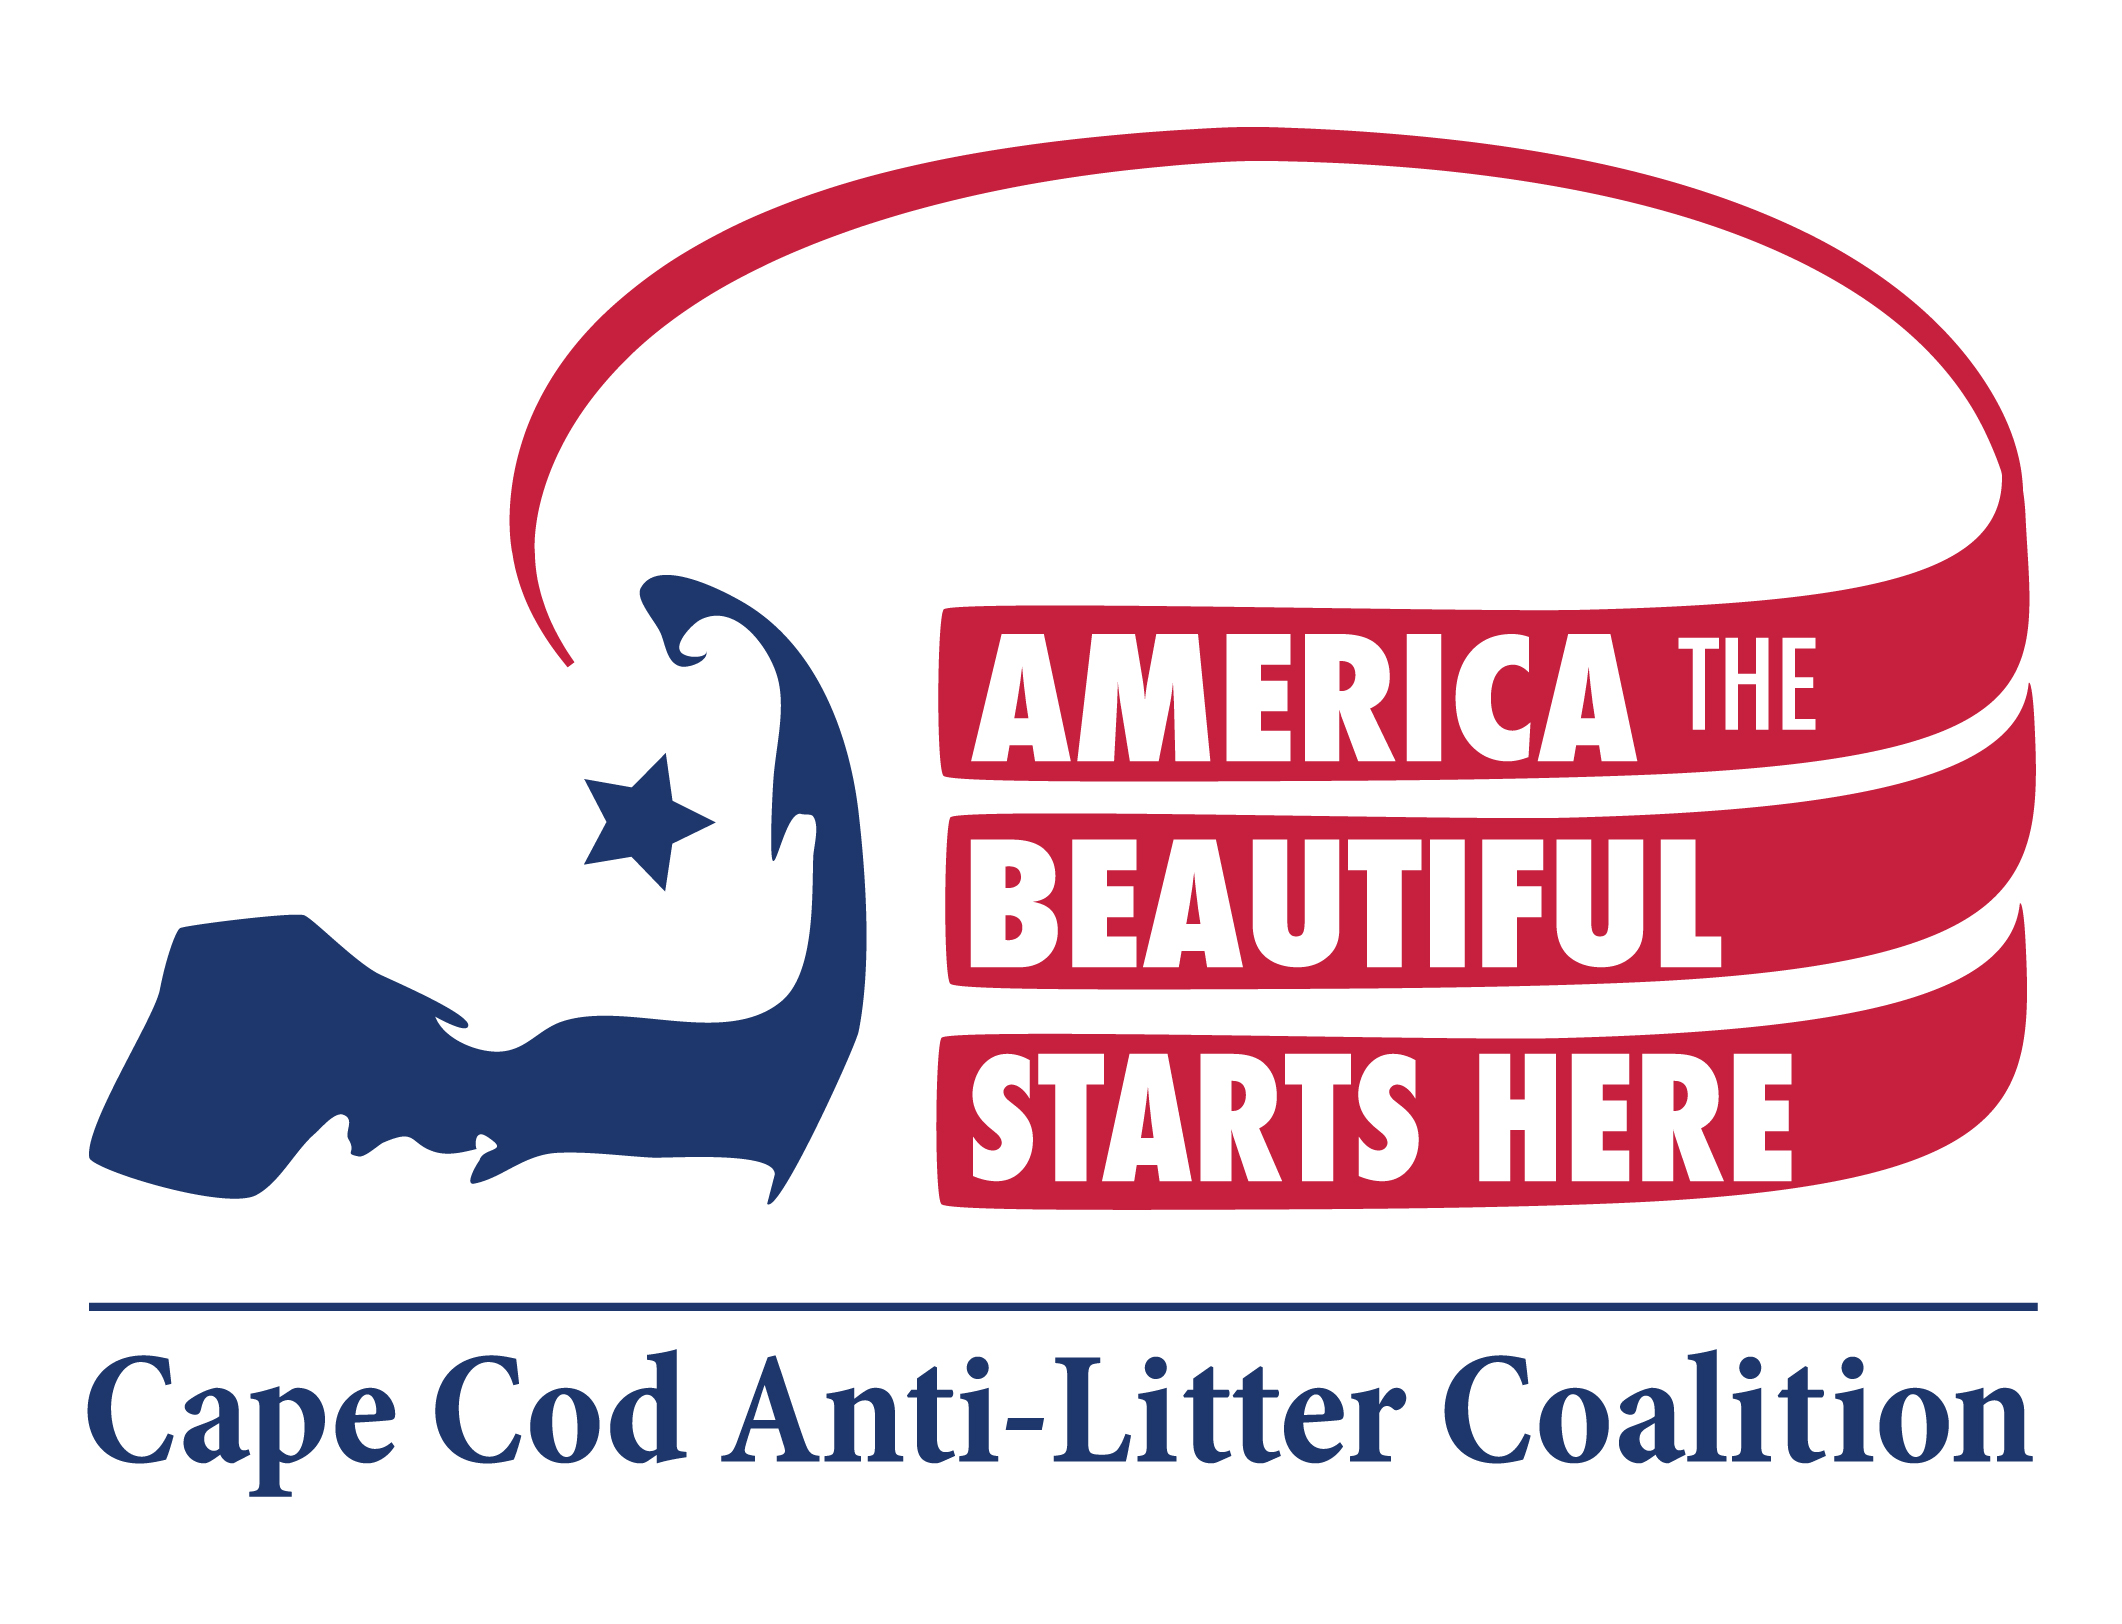 Cape Cod Anti-Litter Coalition